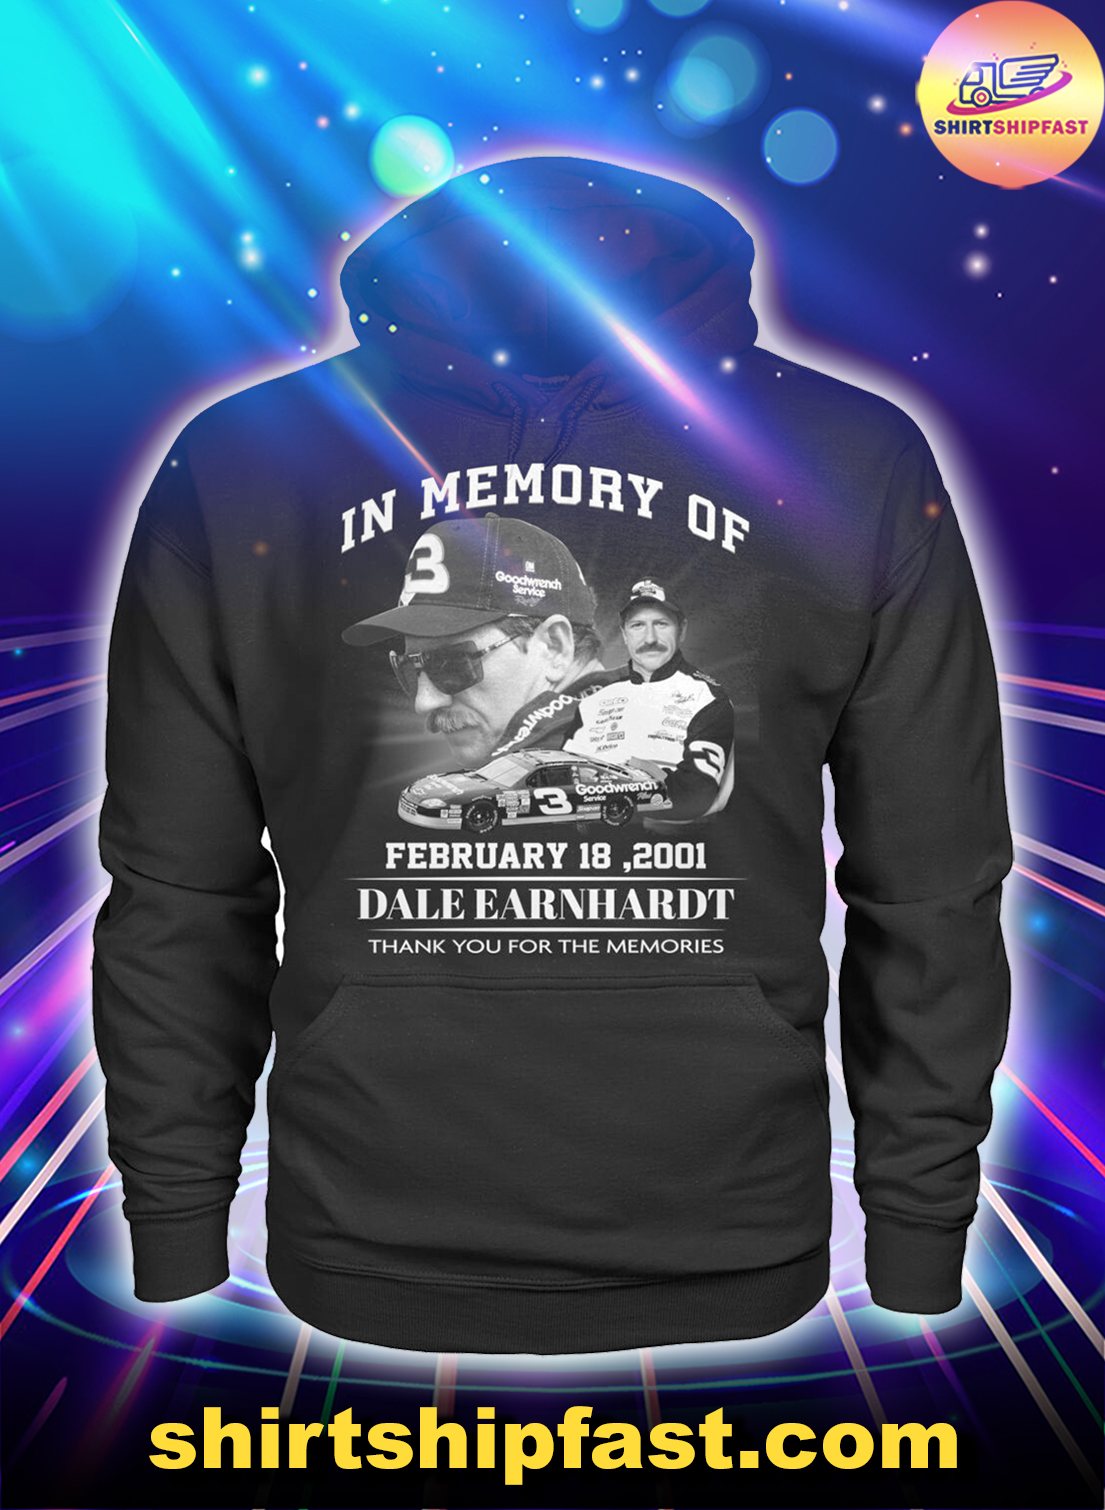 In memory of February 18 2001 Dale Earnhardt thank you for the memories hoodie